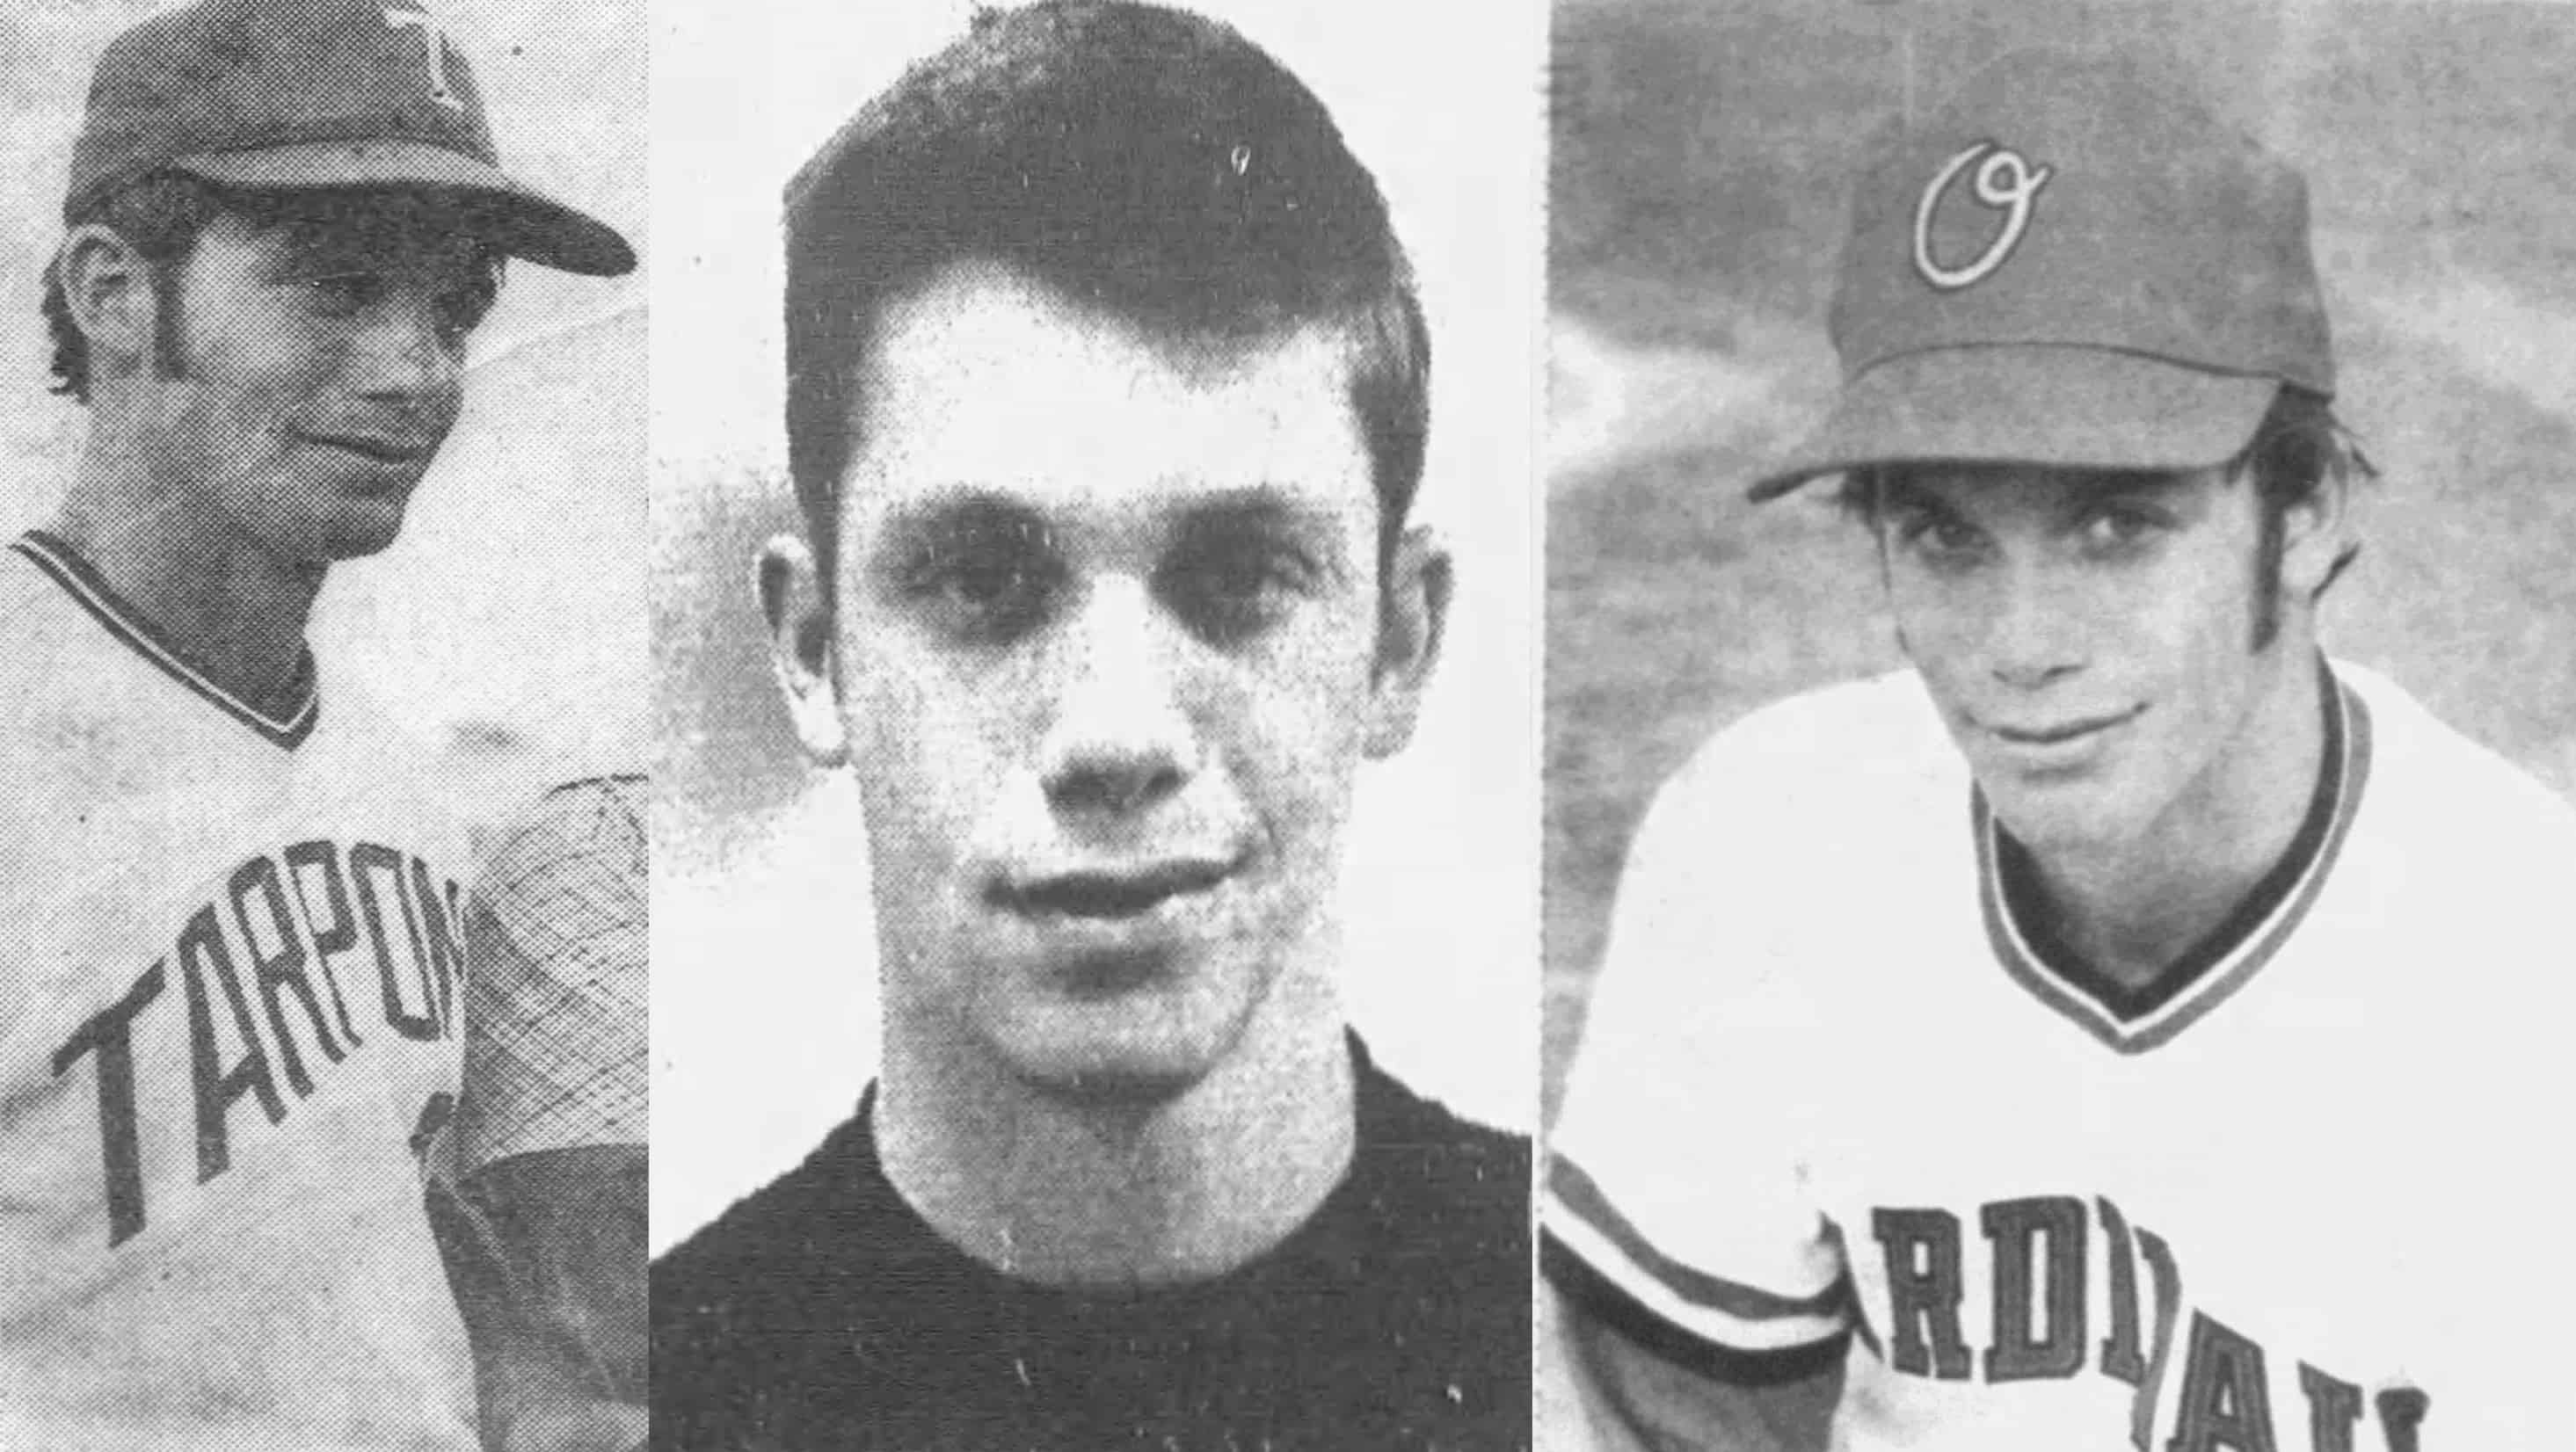 Randy Poffo - Various baseball photos of Randy Savage during his baseball years, from the Tarpons, his high school photo and when he was played for Orangeburg